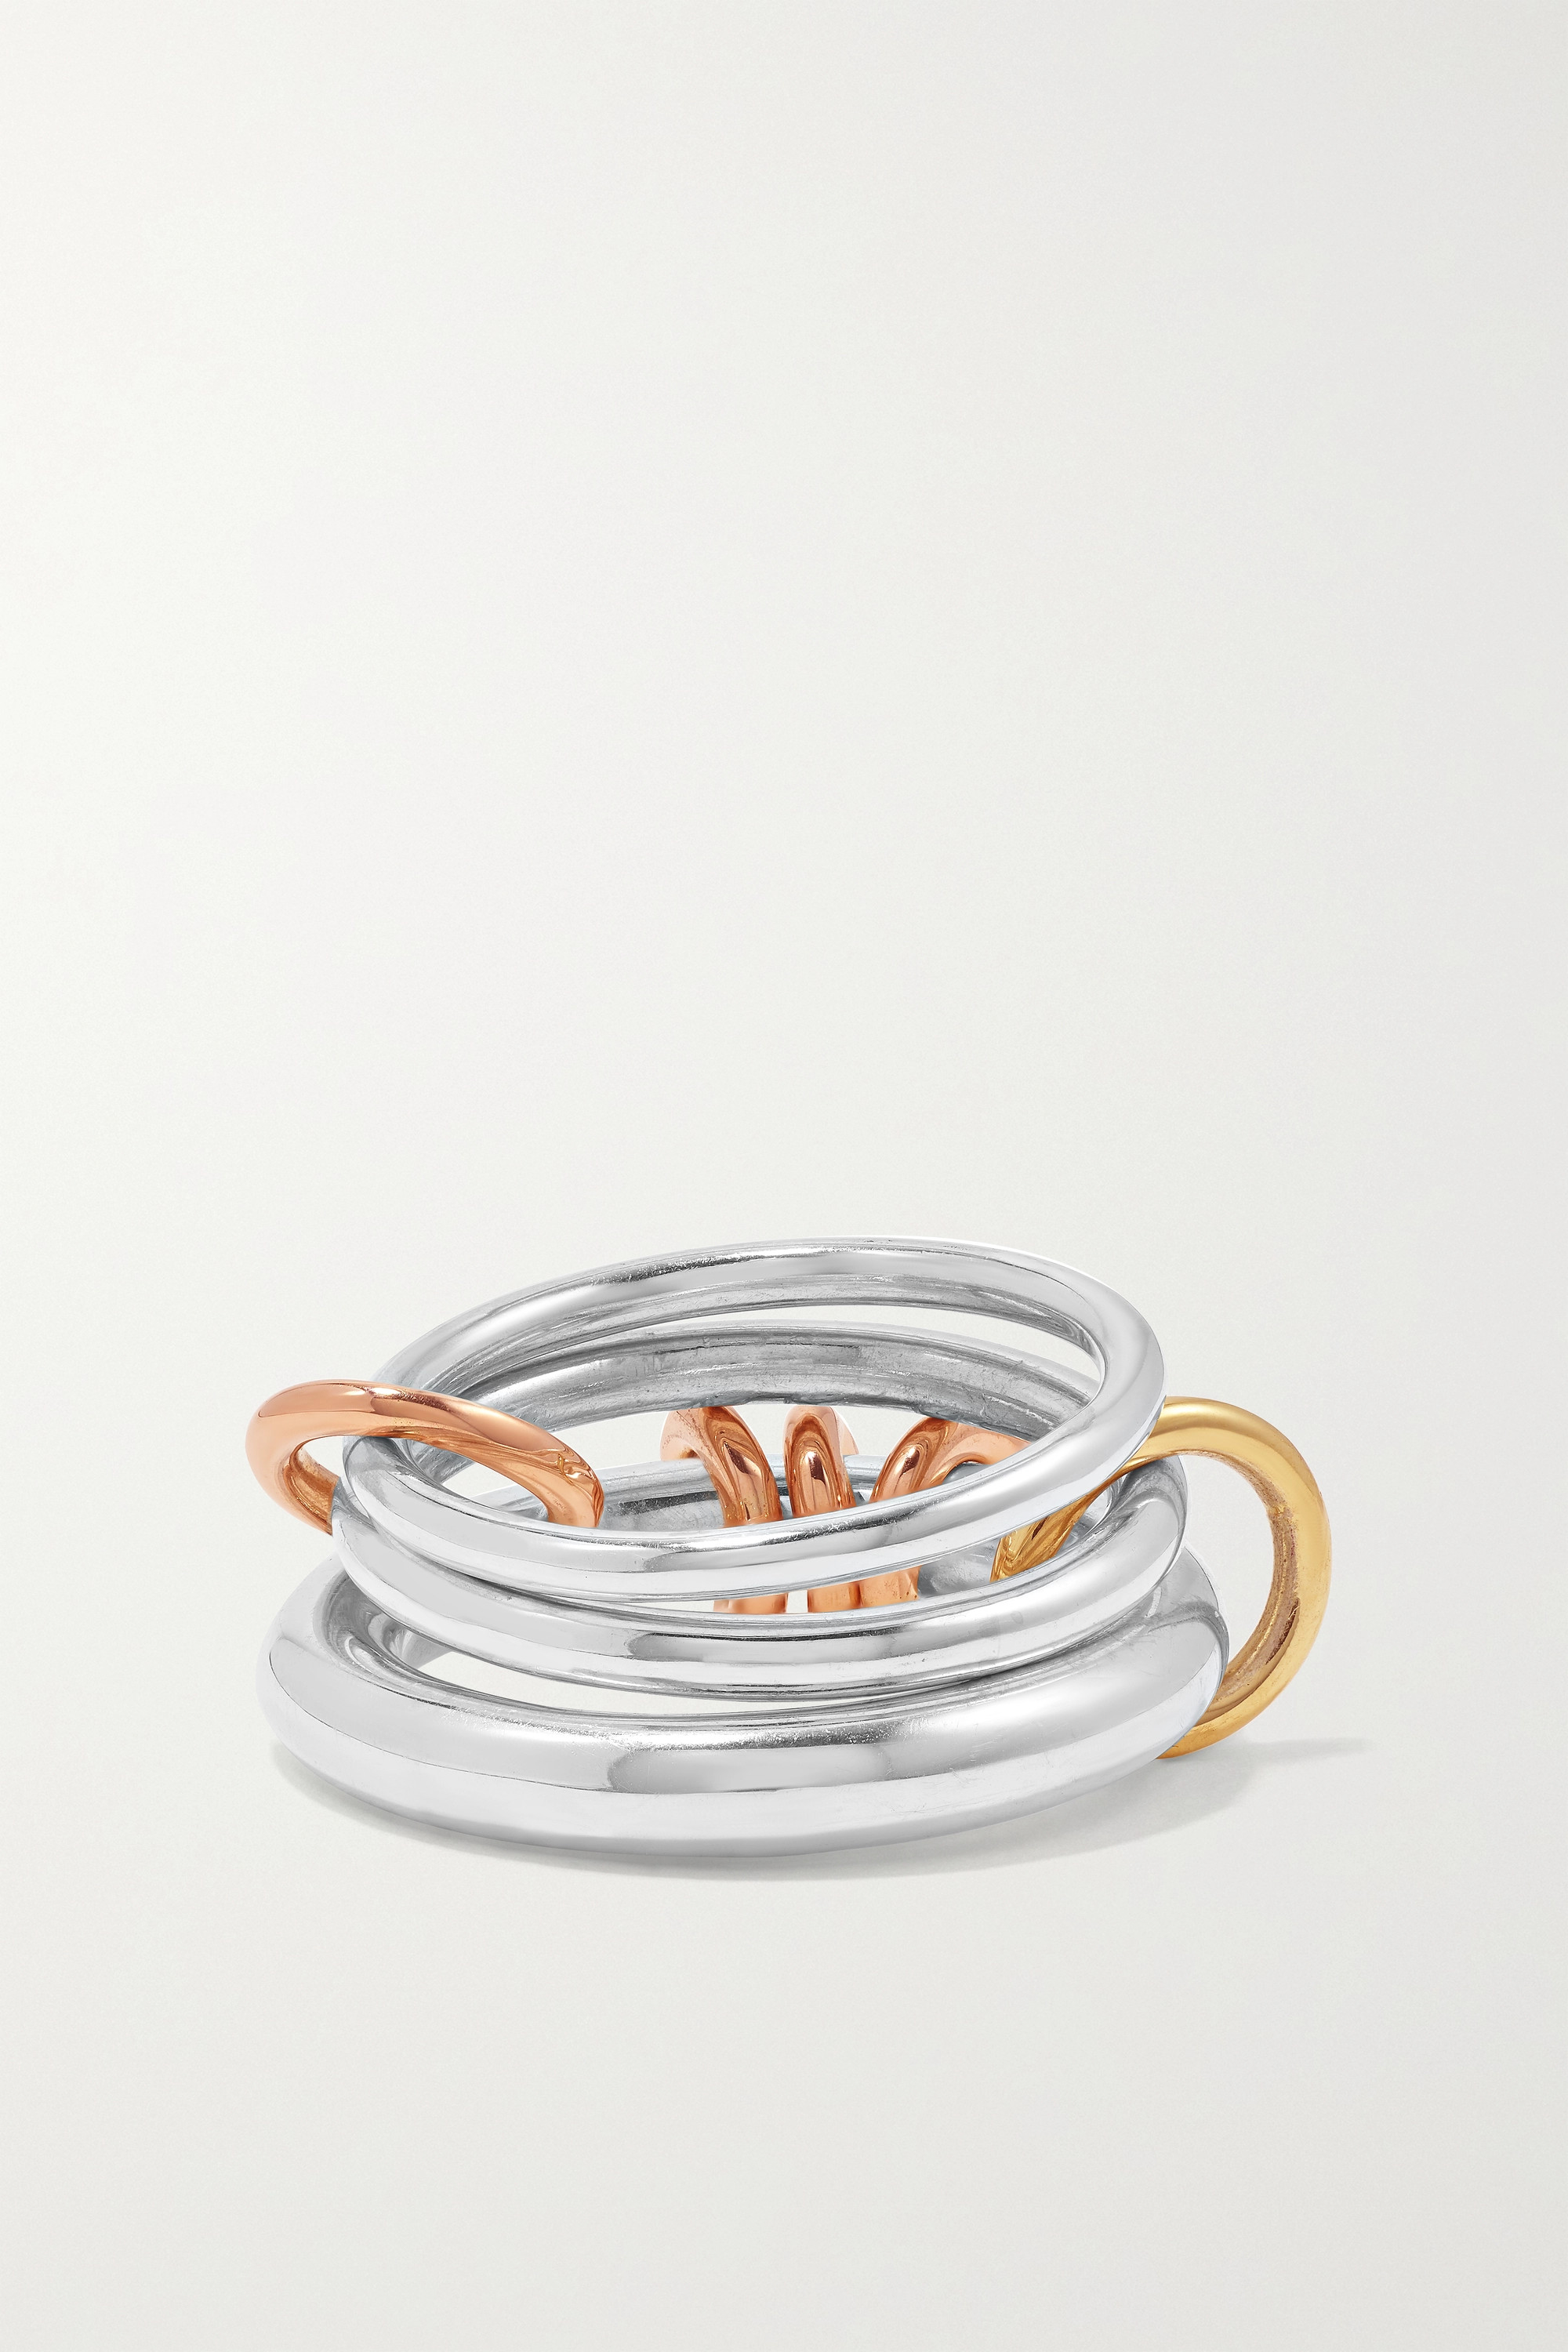 Spinelli Kilcollin Orion set of three sterling silver and 18-karat yellow and rose gold rings